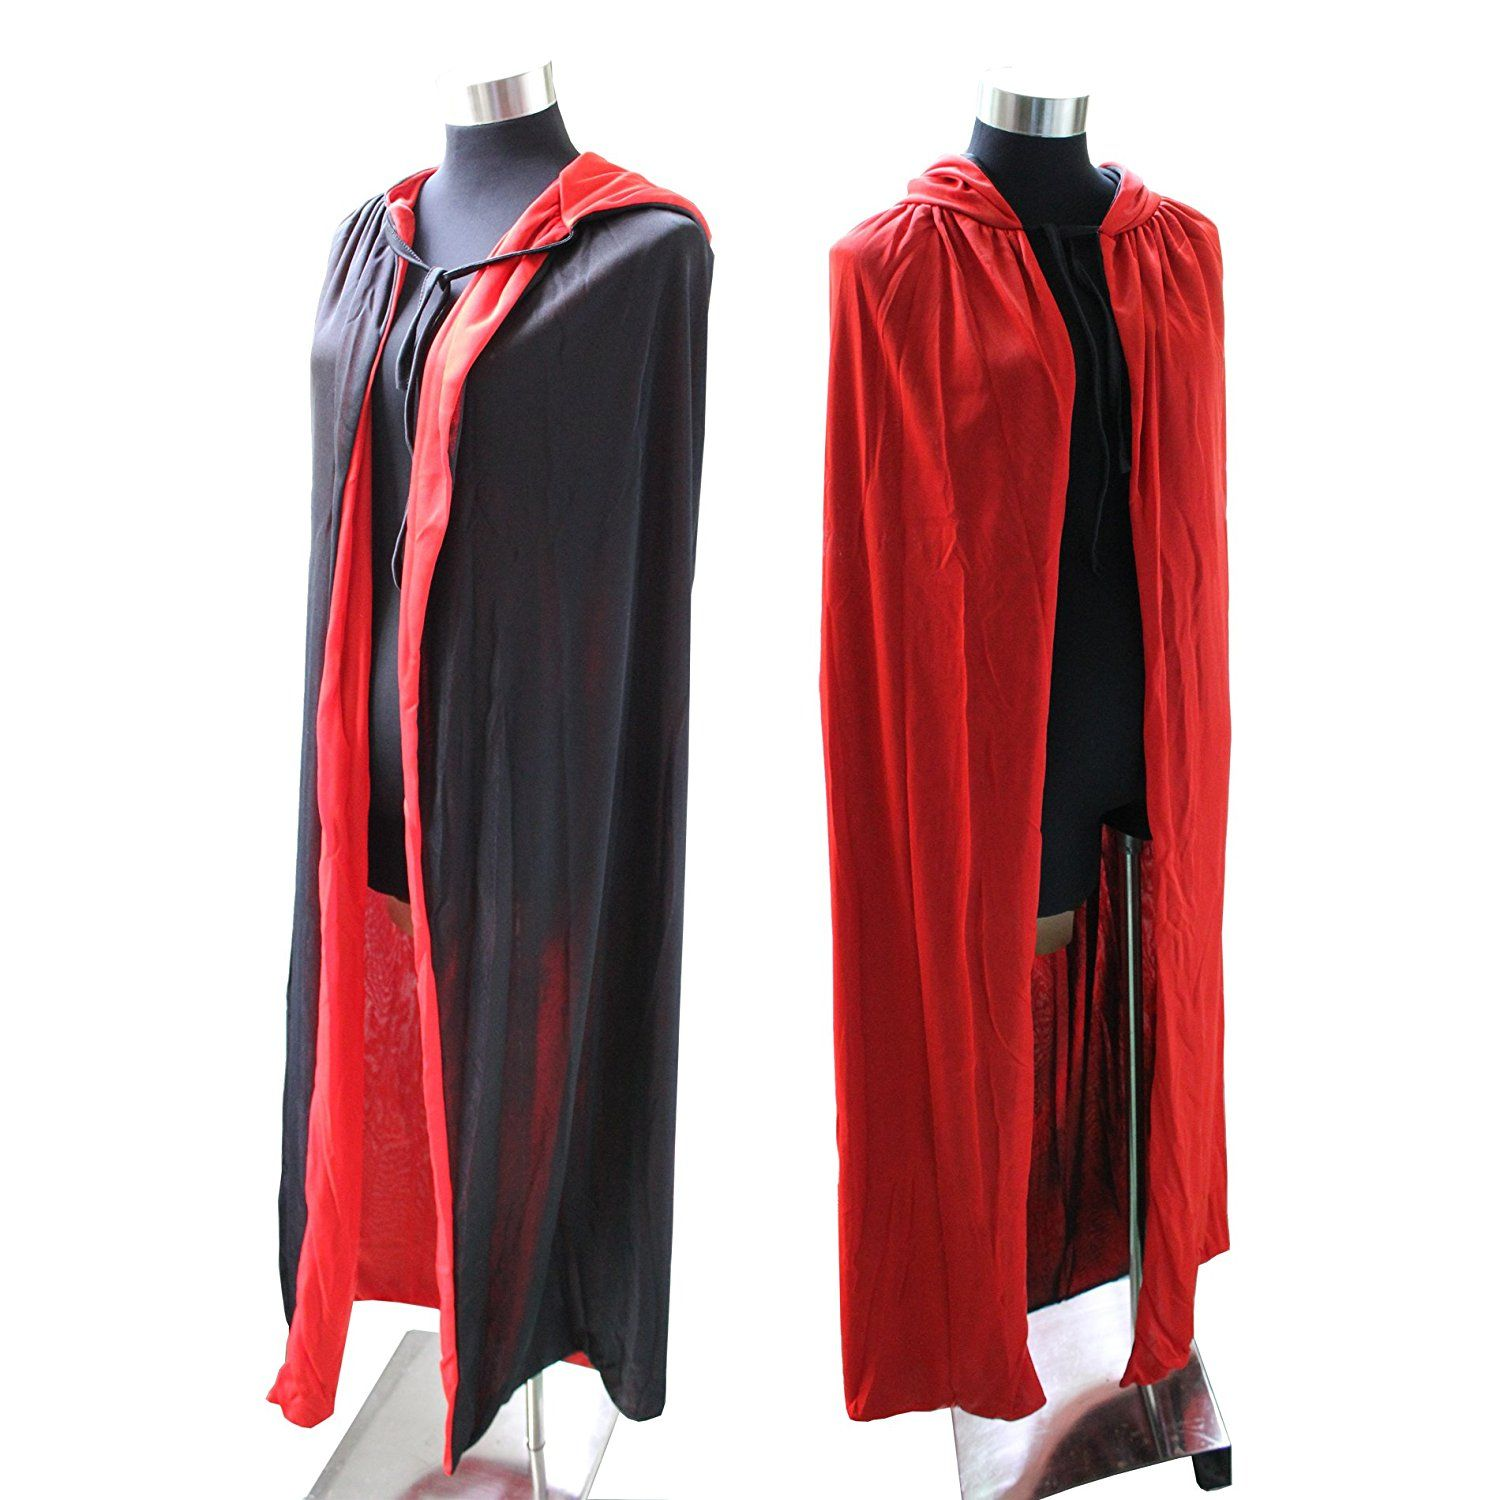 Cloak Cape Hooded Costume Adult Red/Black Duplex Party Props: Amazon.co.uk: Toys & Games